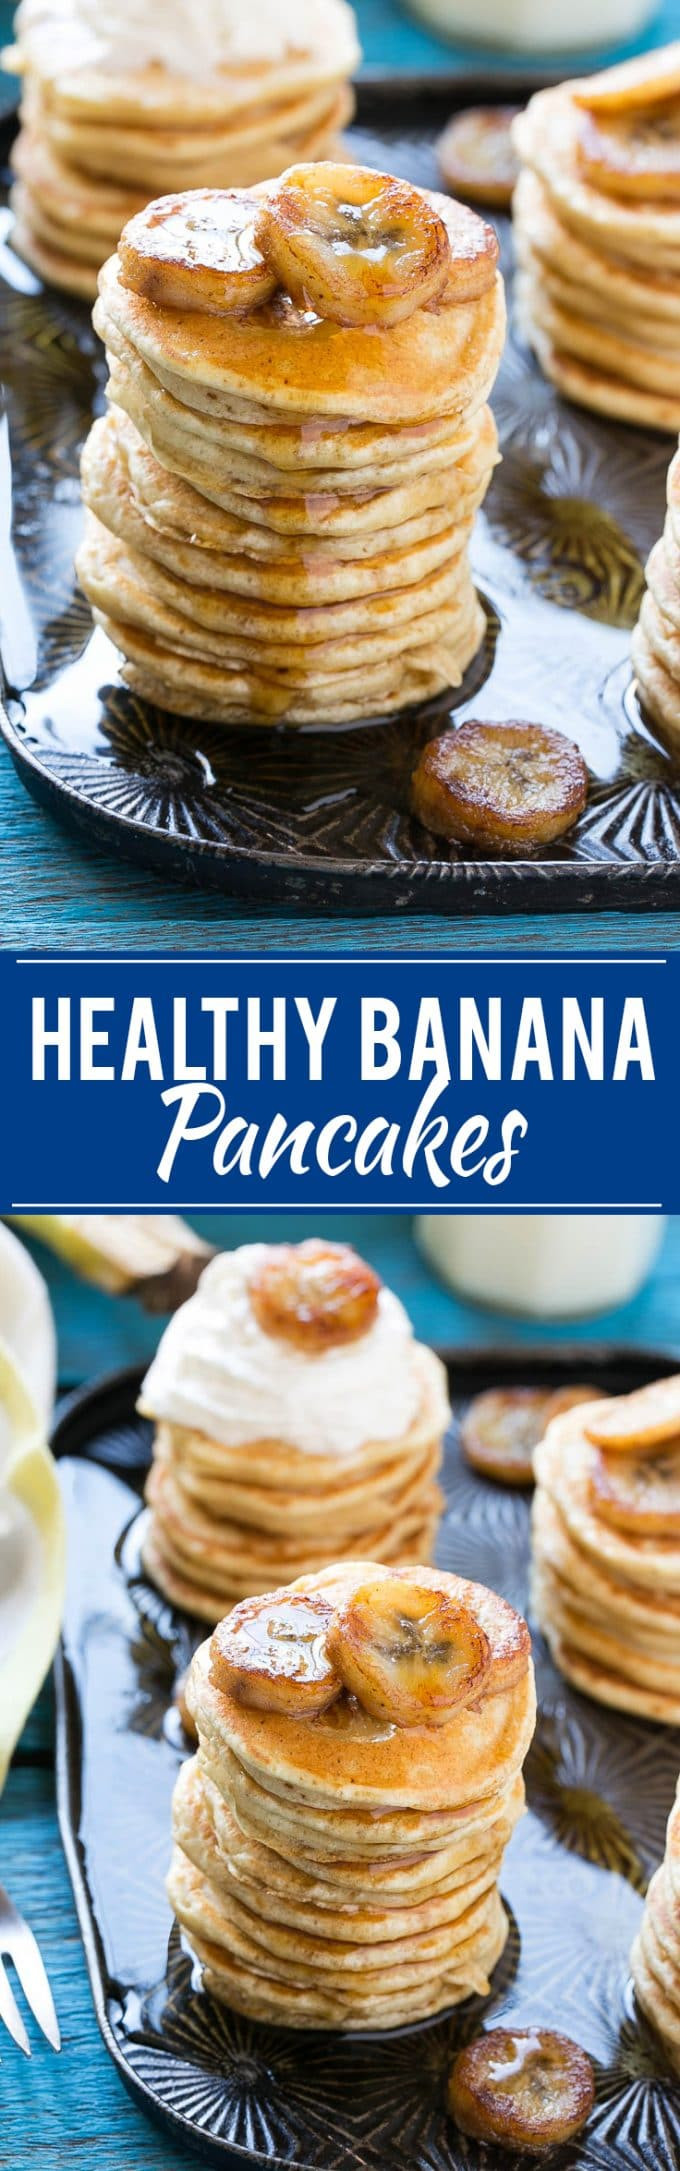 Healthy Banana Pancakes  Healthy Banana Pancakes Dinner at the Zoo